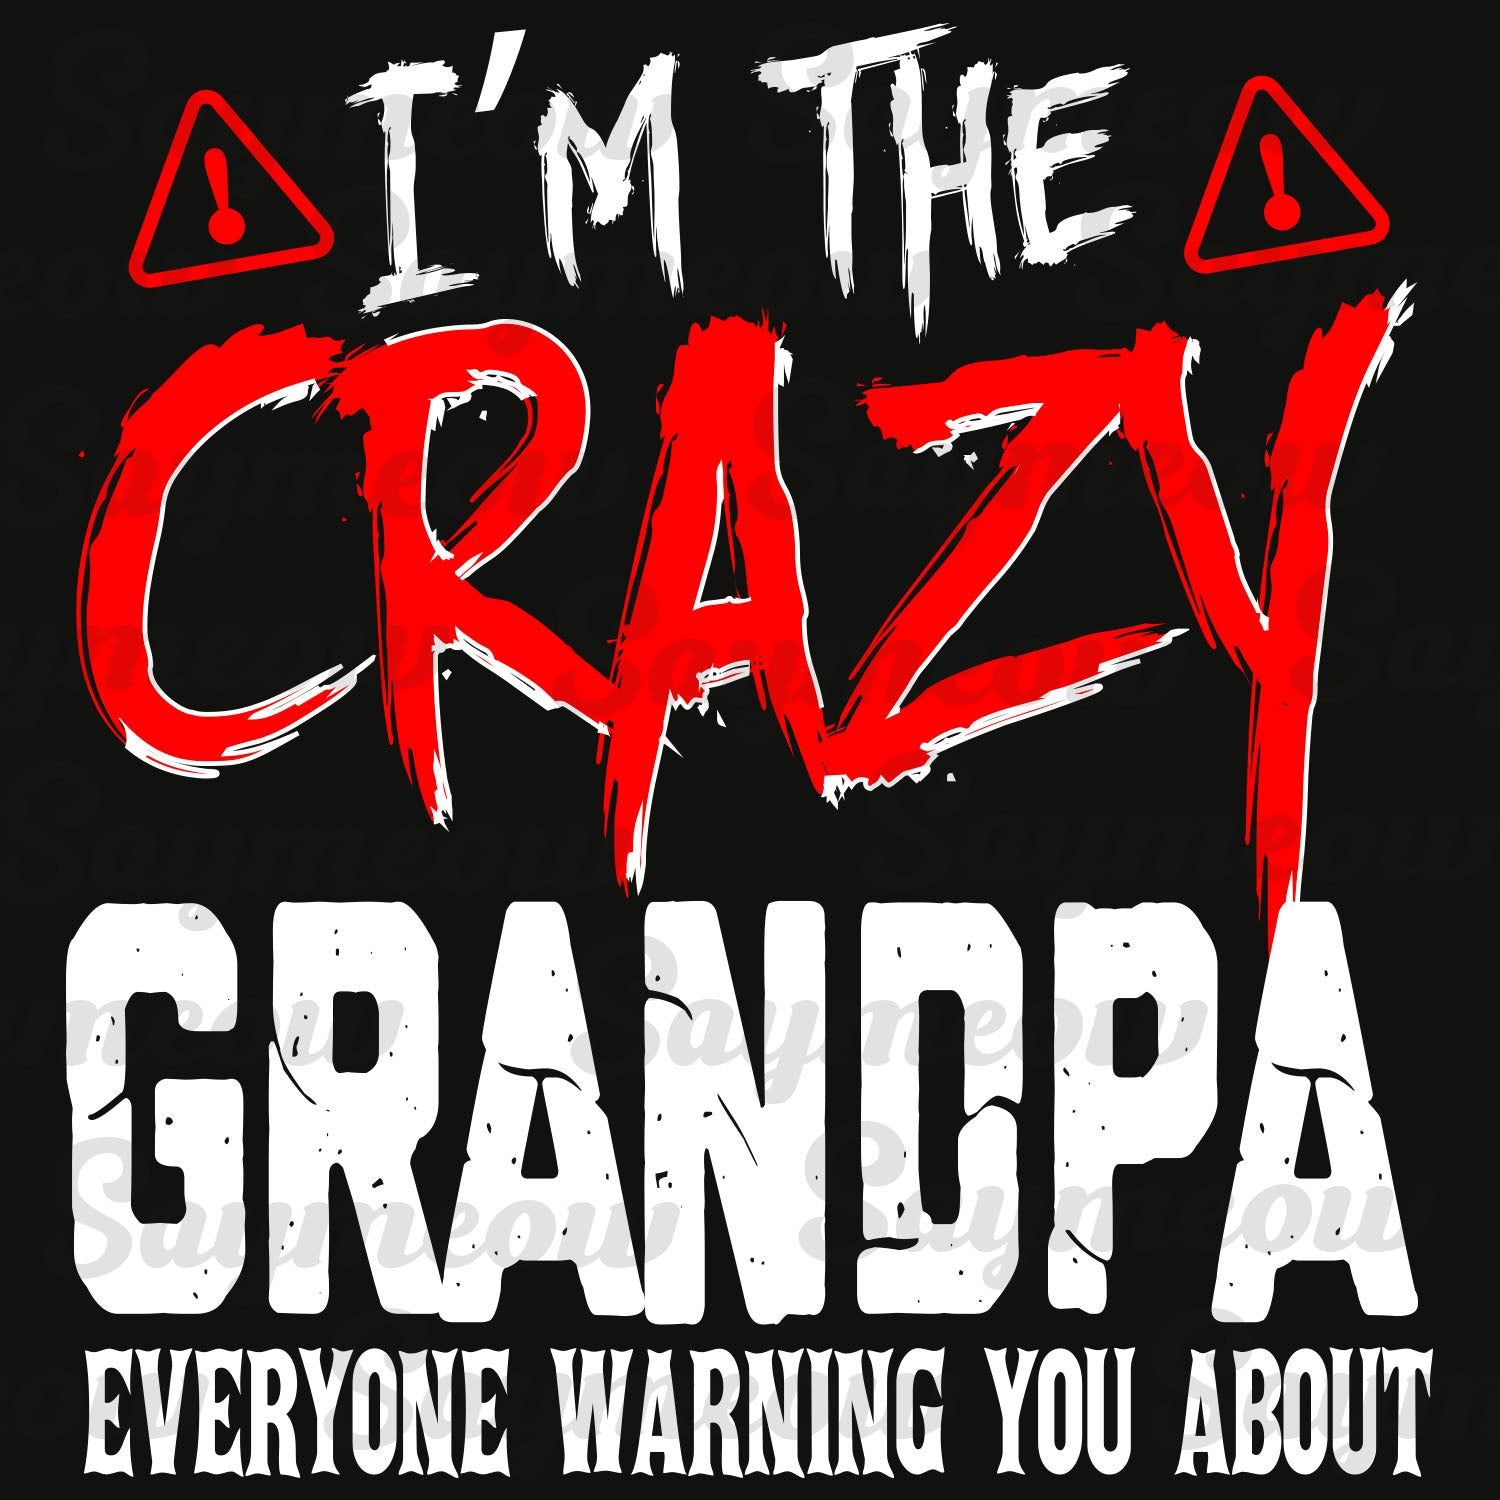 I'm the crazy grandpa,  grandpa svg, grandpa gift, grandpa birthday, best grandpa ever, grandpa life, family svg, family shirt,family gift,trending svg, Files For Silhouette, Files For Cricut, SVG, DXF, EPS, PNG, Instant Download